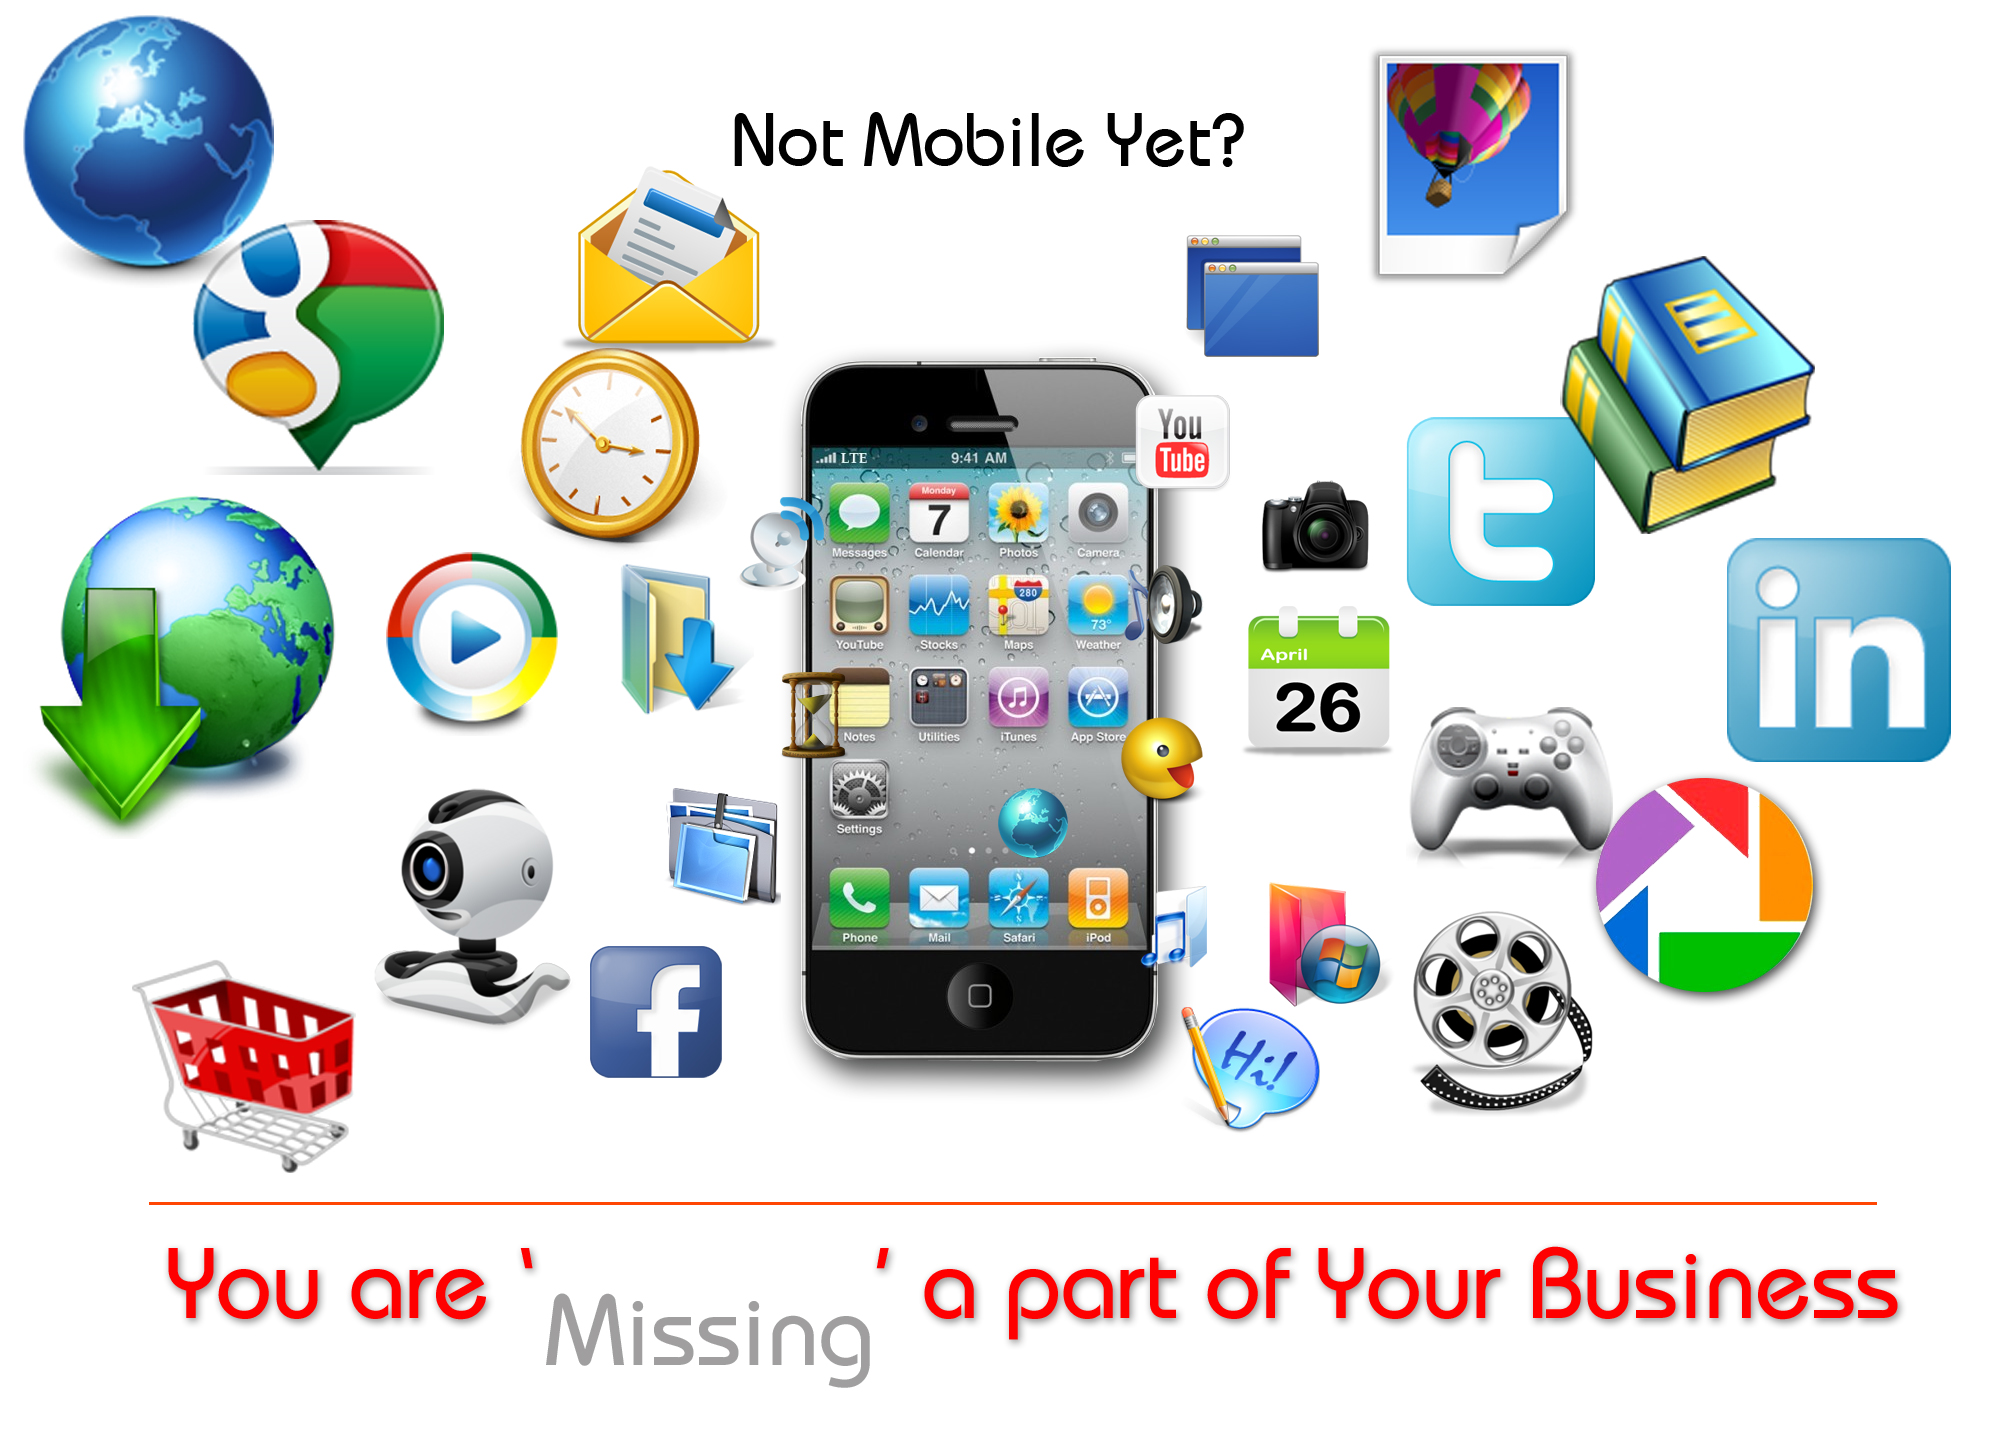 Is your Business not on Mobile yet? Don't worry, we tell you how to?